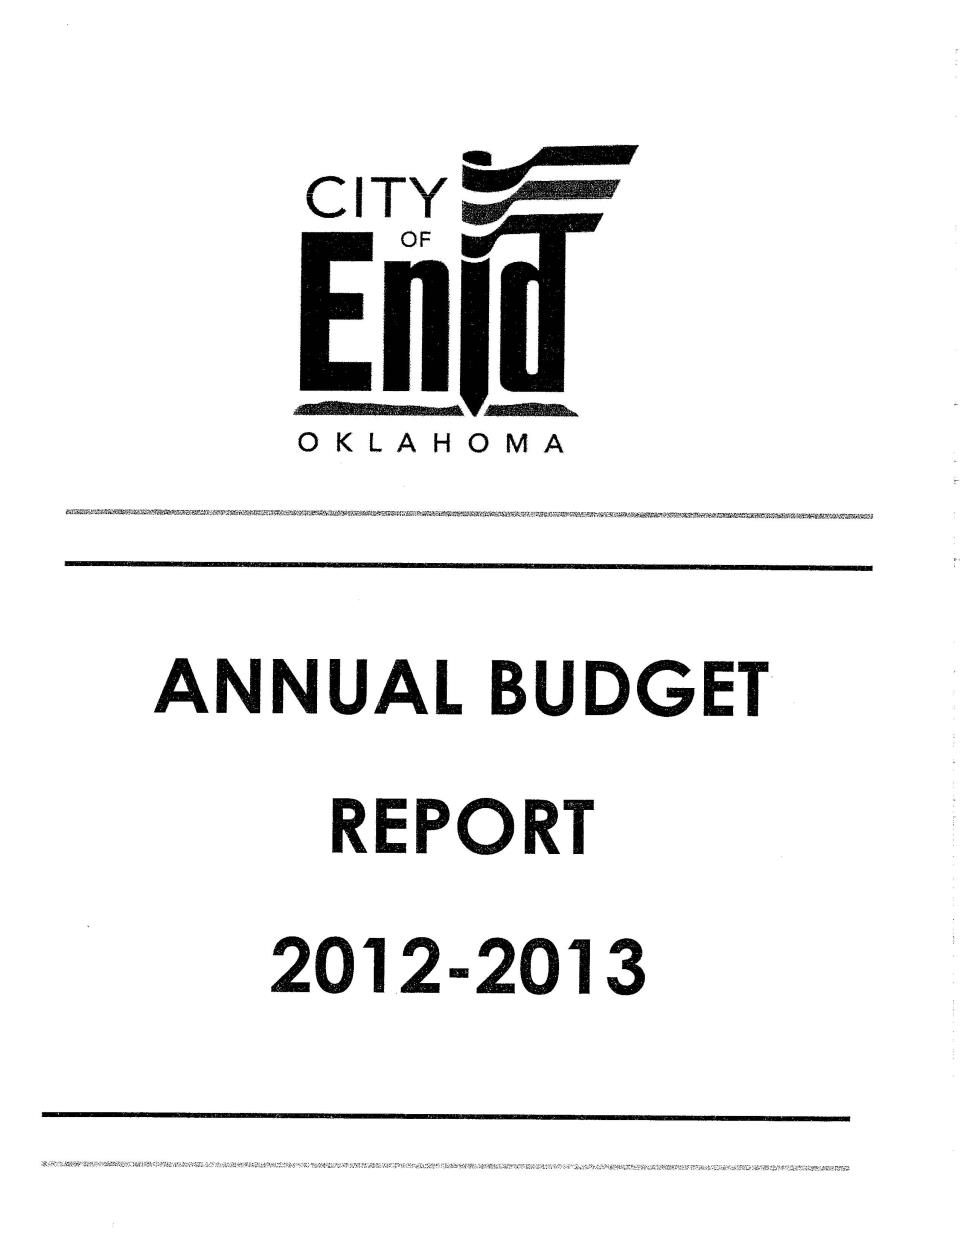 2012-2013 Budget Cover